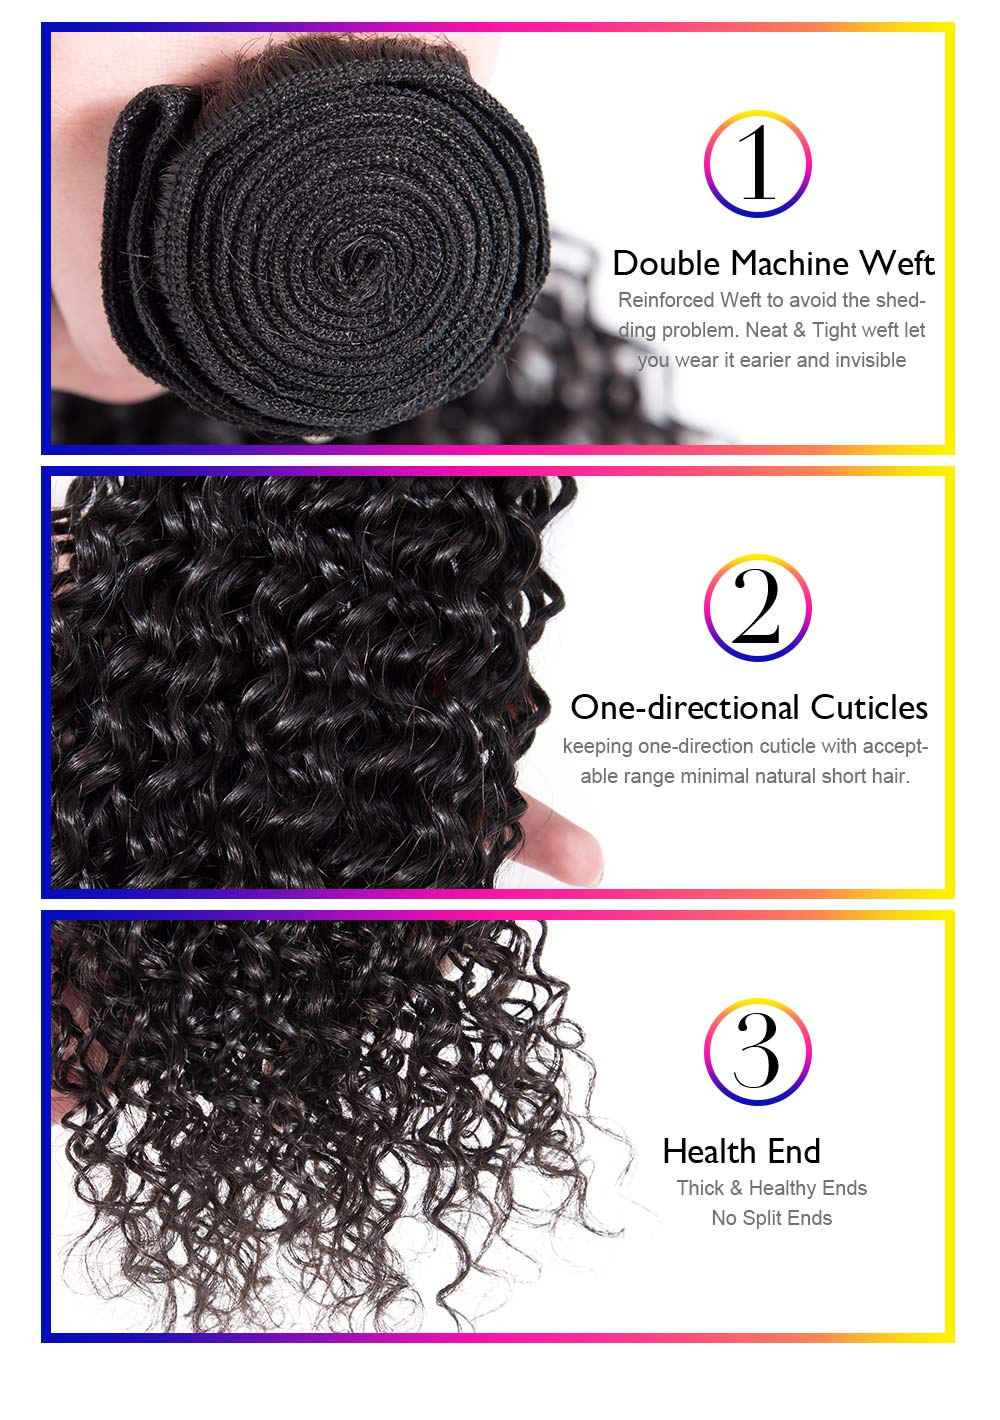 curly hair with frontal curly hair with 360 frontal curly hair bundles with frontal Originea Hair Human Curly Hair 3 Bundles With 360 Lace Frontal Brazilian Afro Kinky Curly Hair Weave Bundles With Frontal